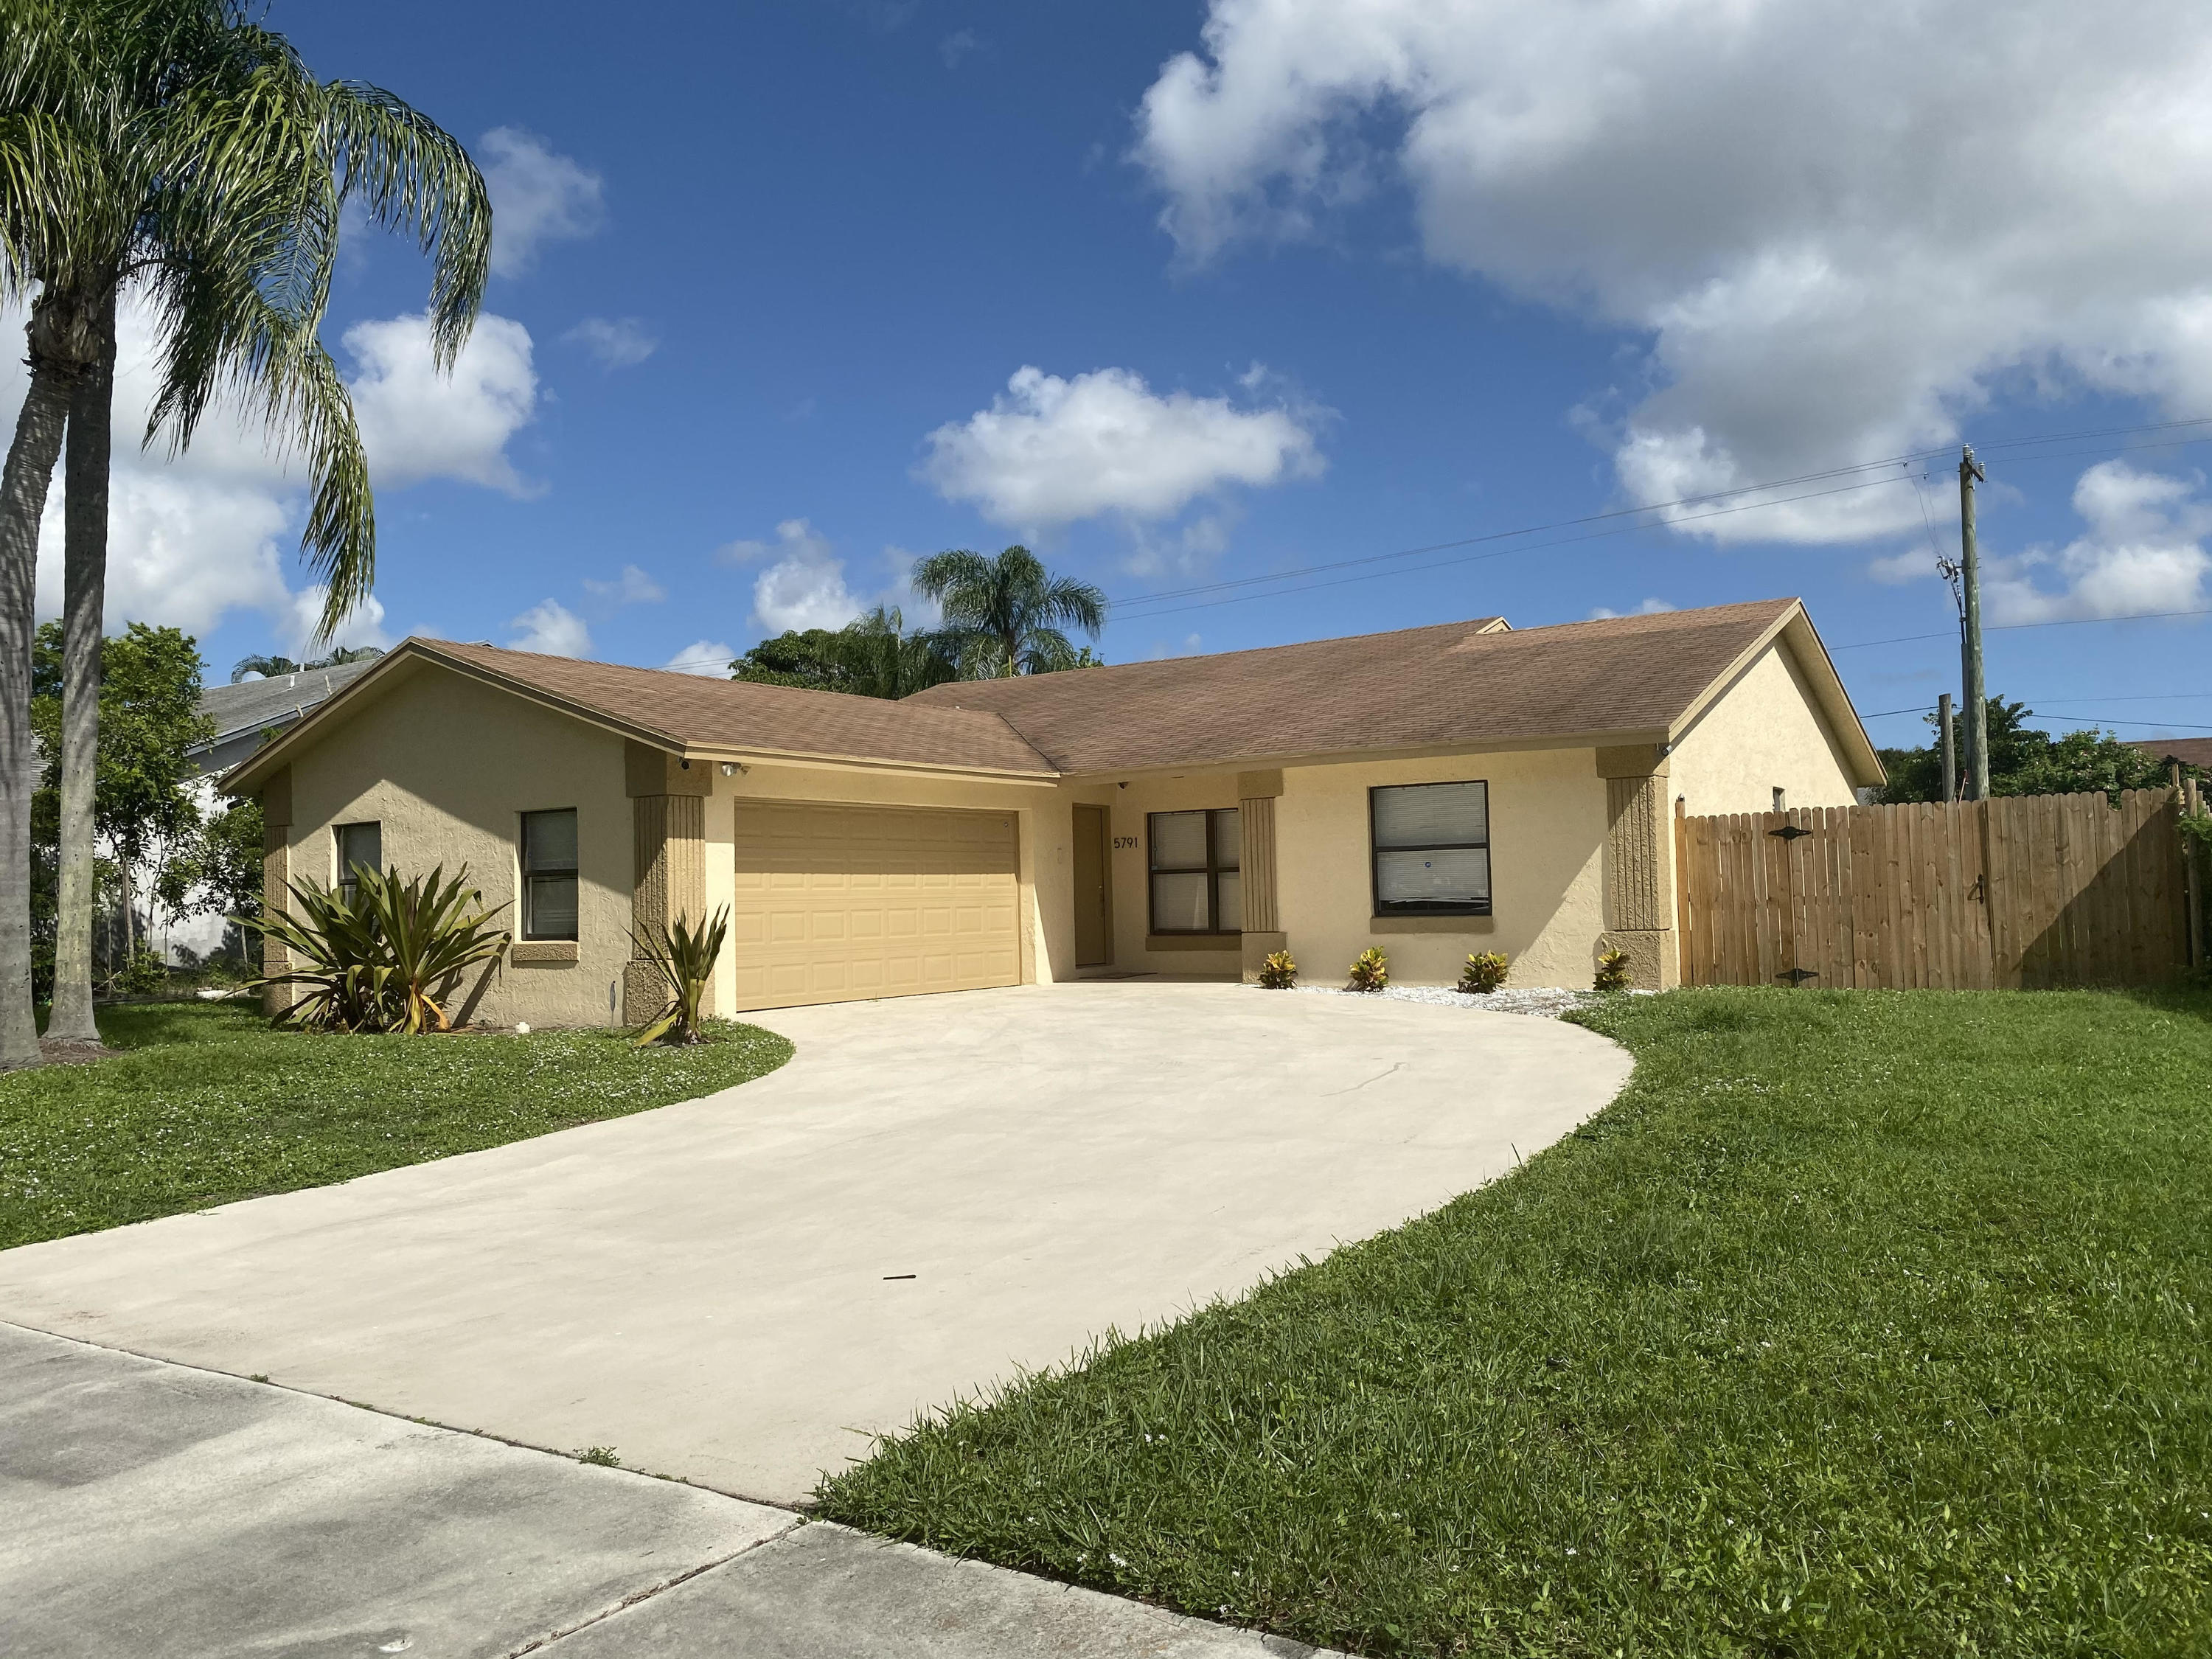 Photo of 5791 Autumn Ridge Road, Lake Worth, FL 33463